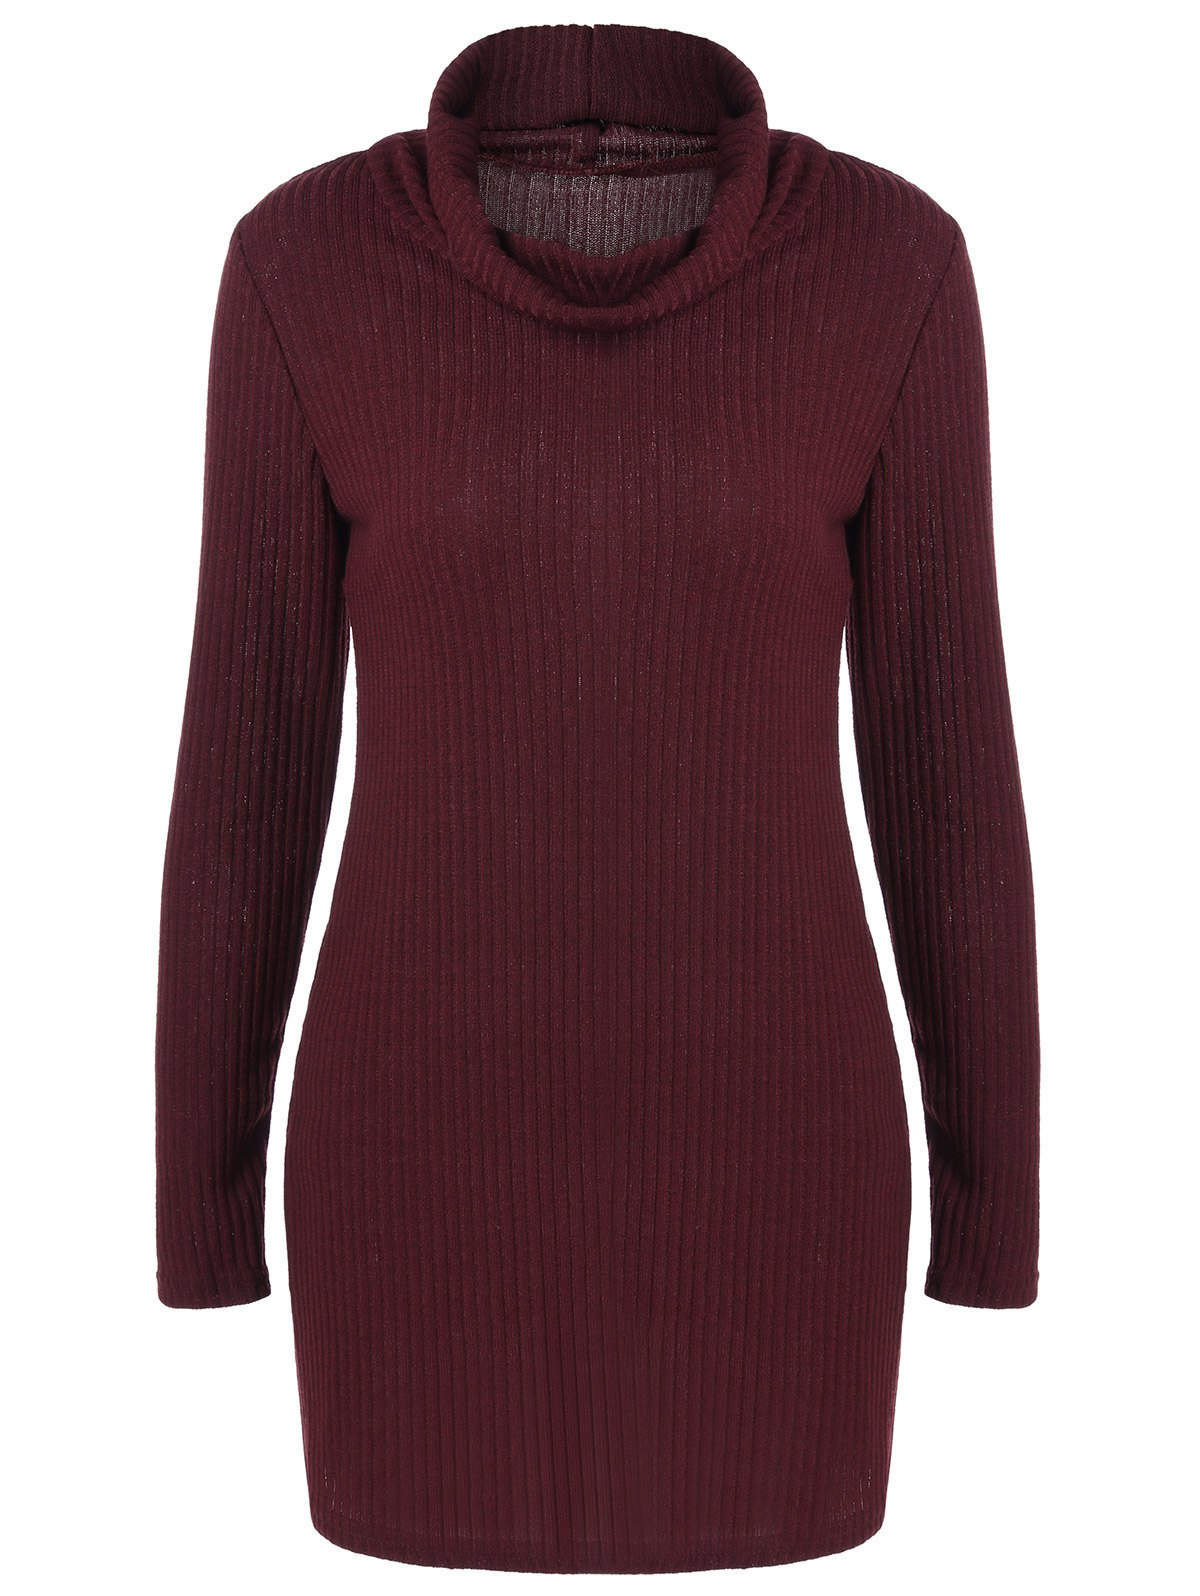 Ribbed Pullover Turtleneck Sweater - WINE RED S